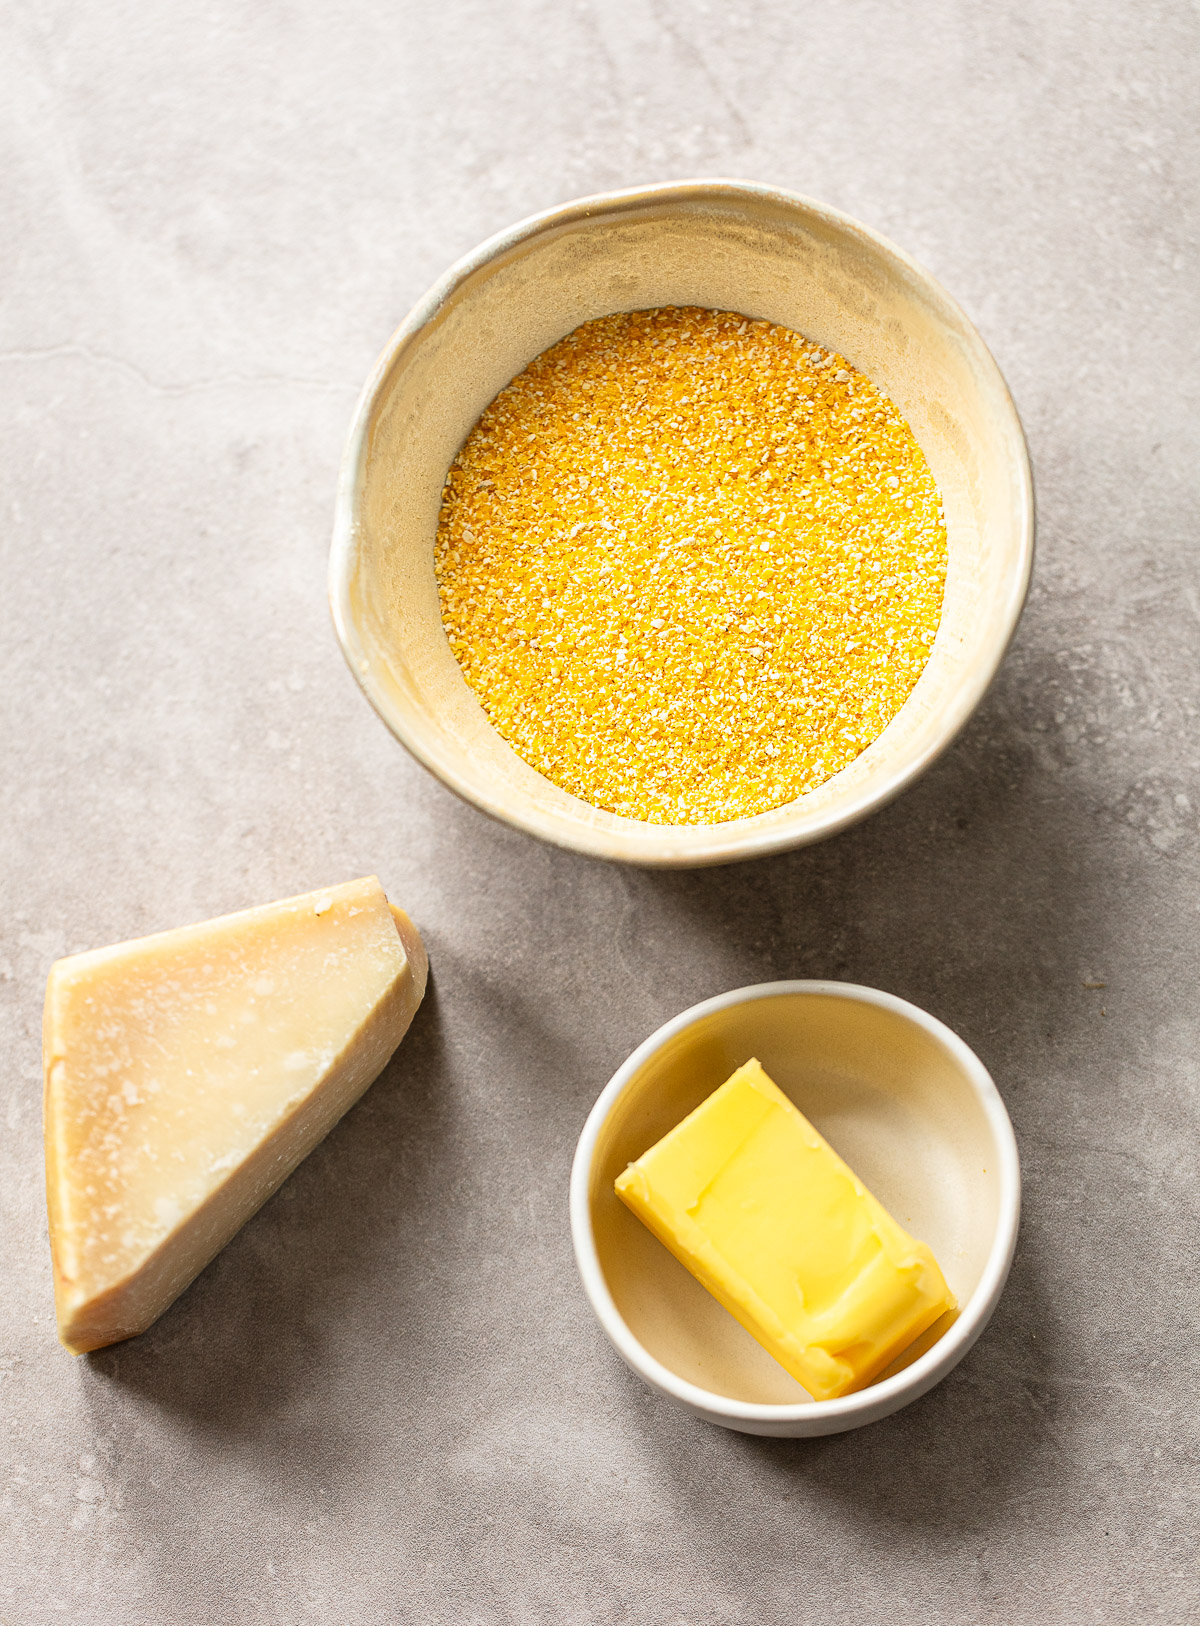 Photo showing the ingredients for making homemade polenta, with a bowl of cornmeal, chunk of Parmesan cheese and butter.